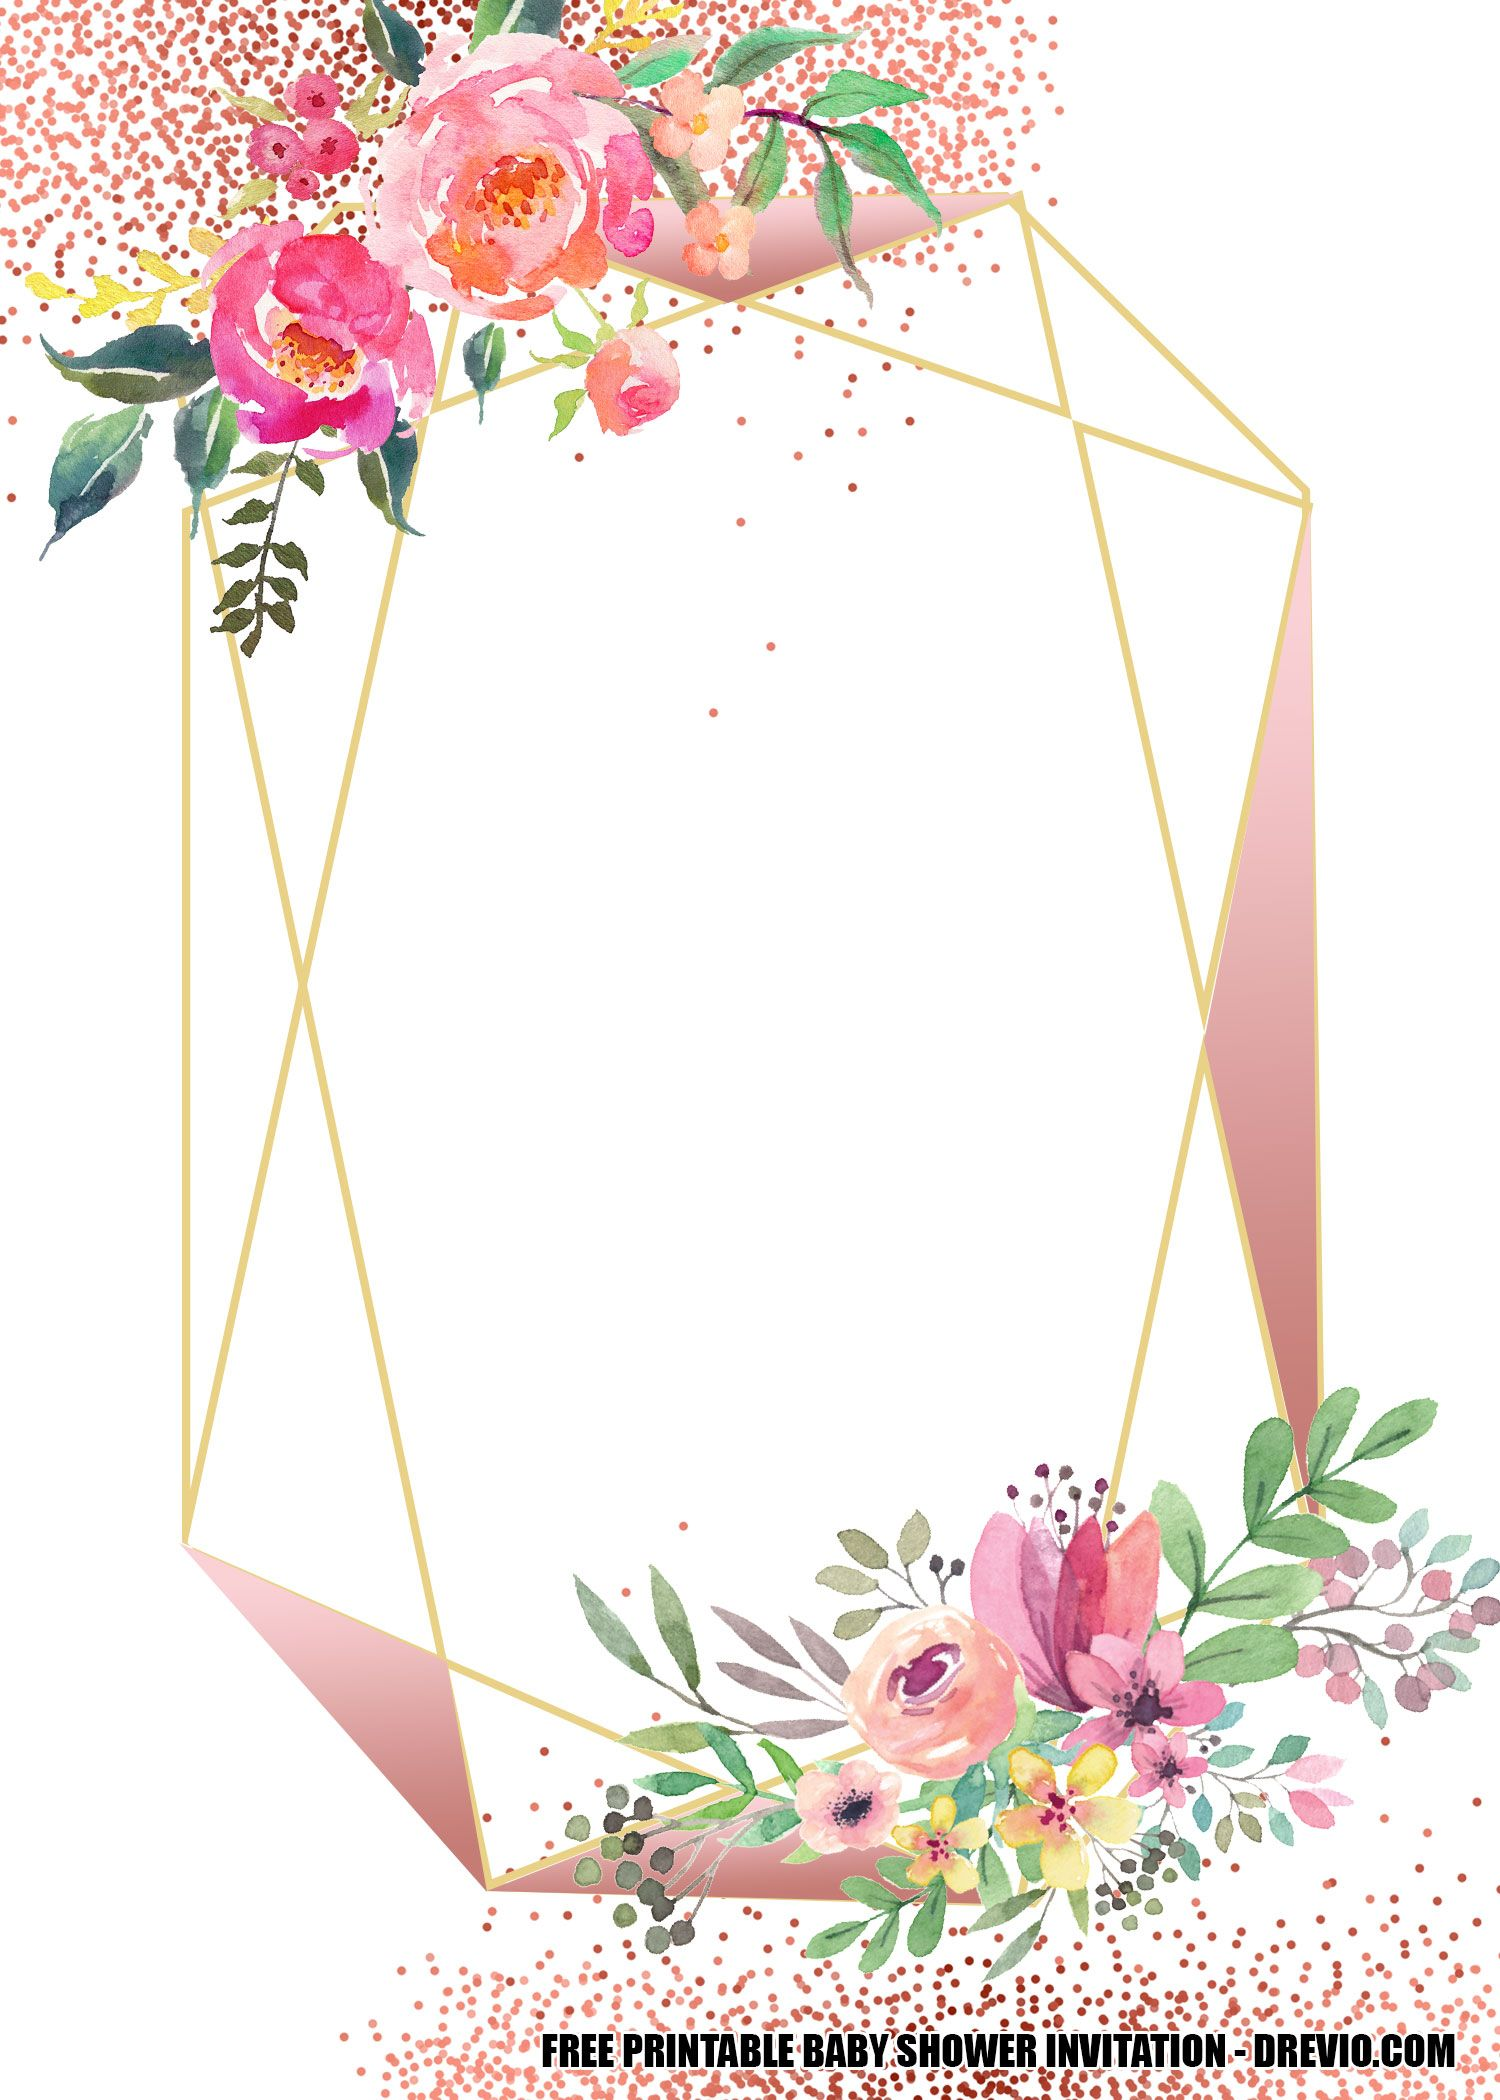 Free Floral Baby Shower Invitation Templates Floral Baby Shower Invitations Baby Shower Invitation Templates Floral Baby Shower